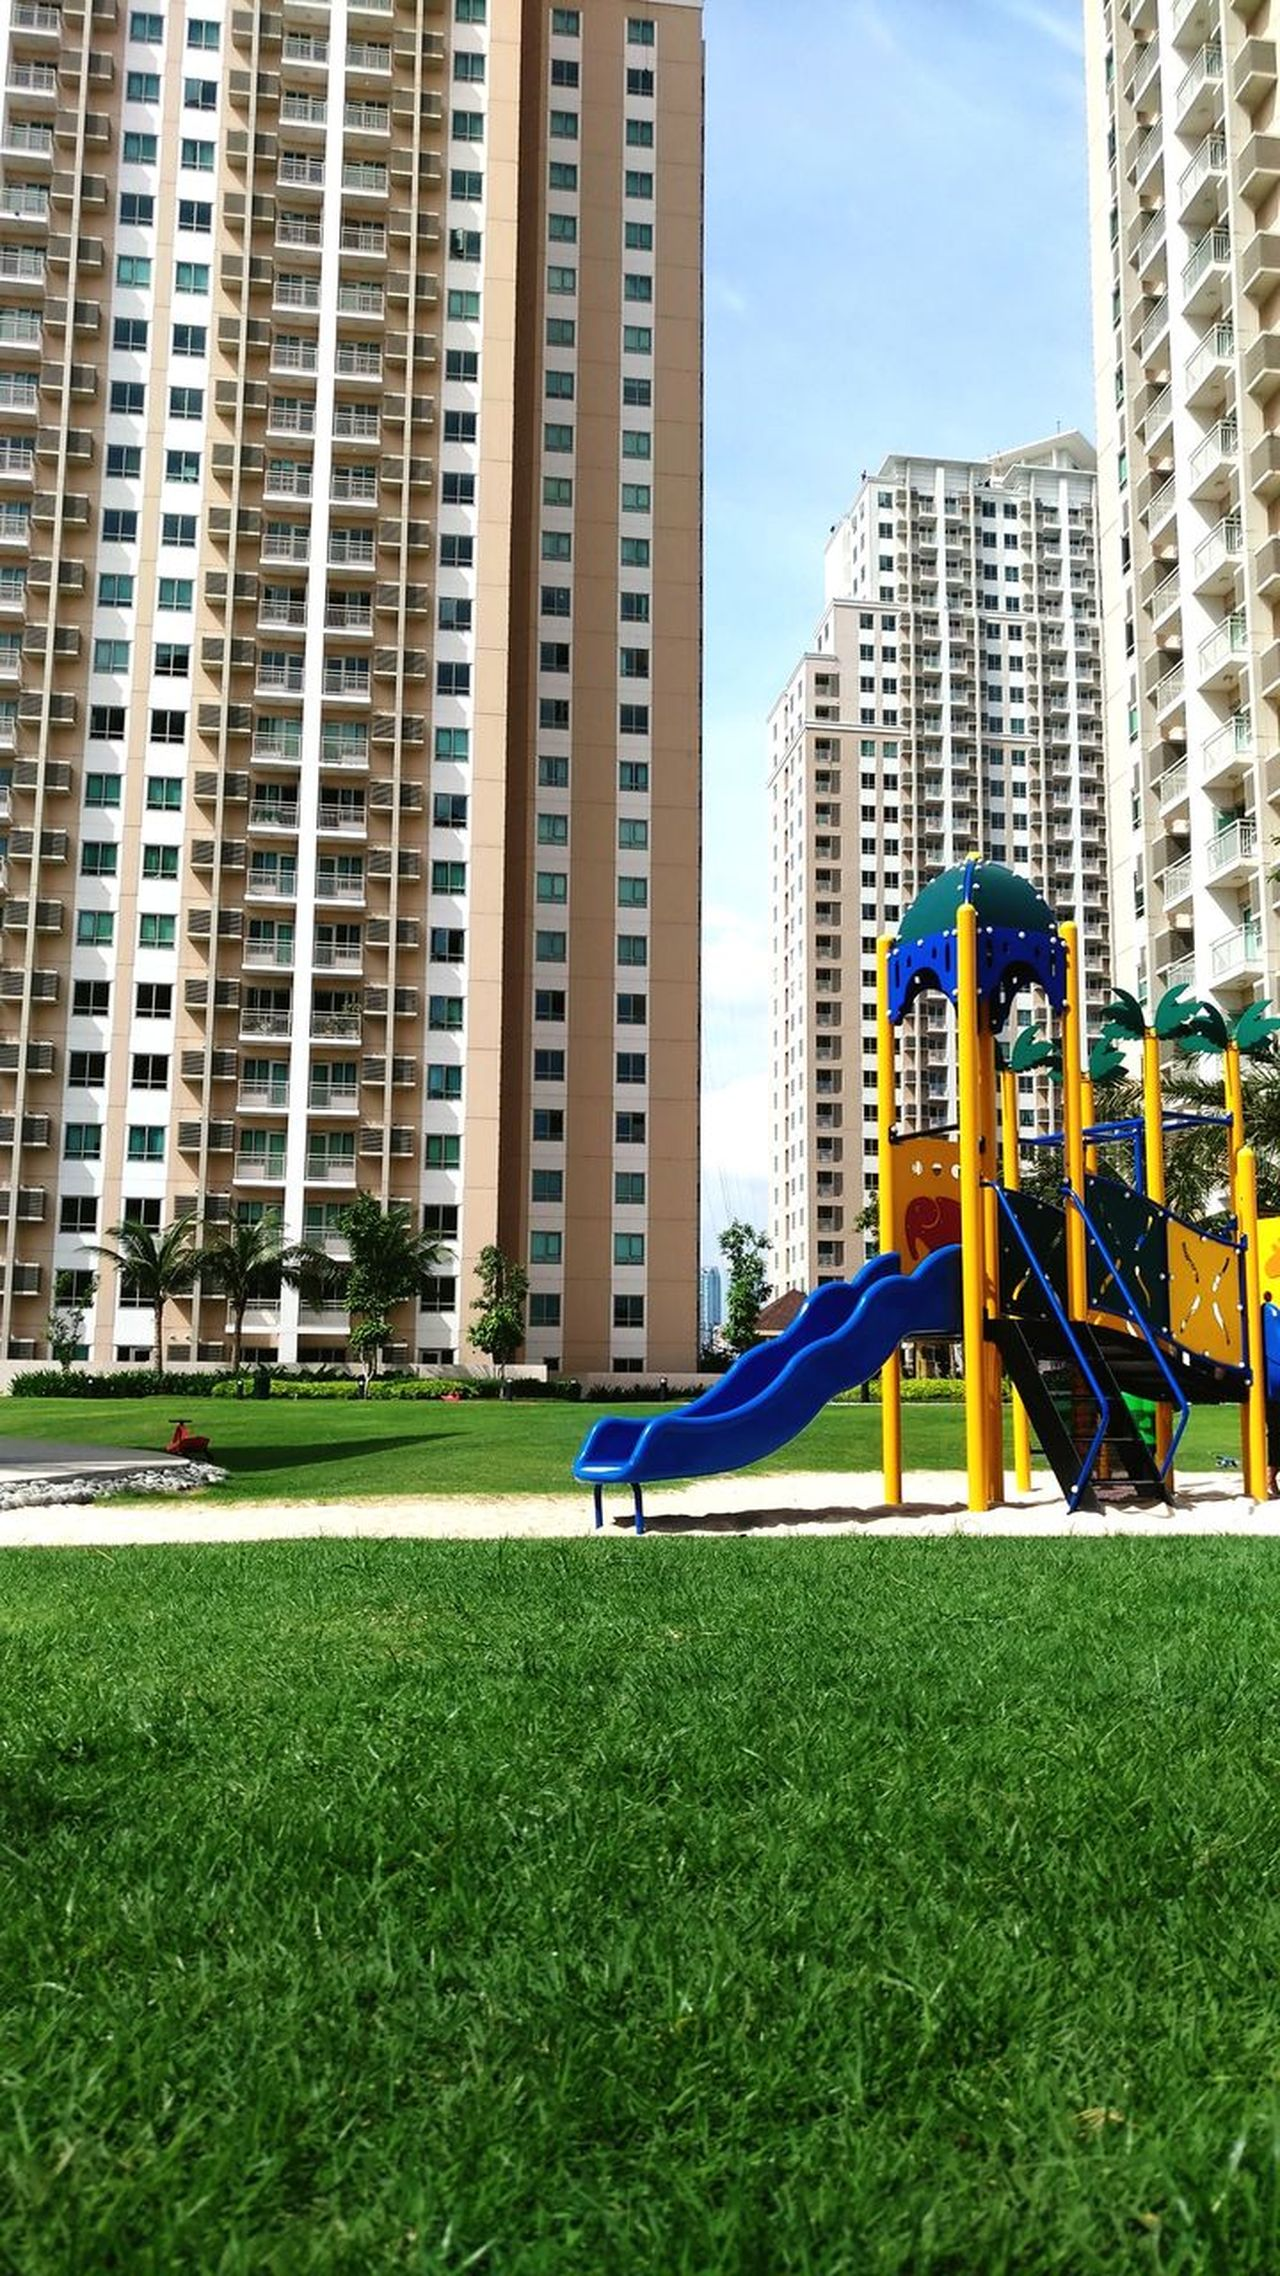 Grass Apartment Built Structure Playgrounds Playground Equipment Outdoors Morning Sun EyeEmNewHere Adapted To The City